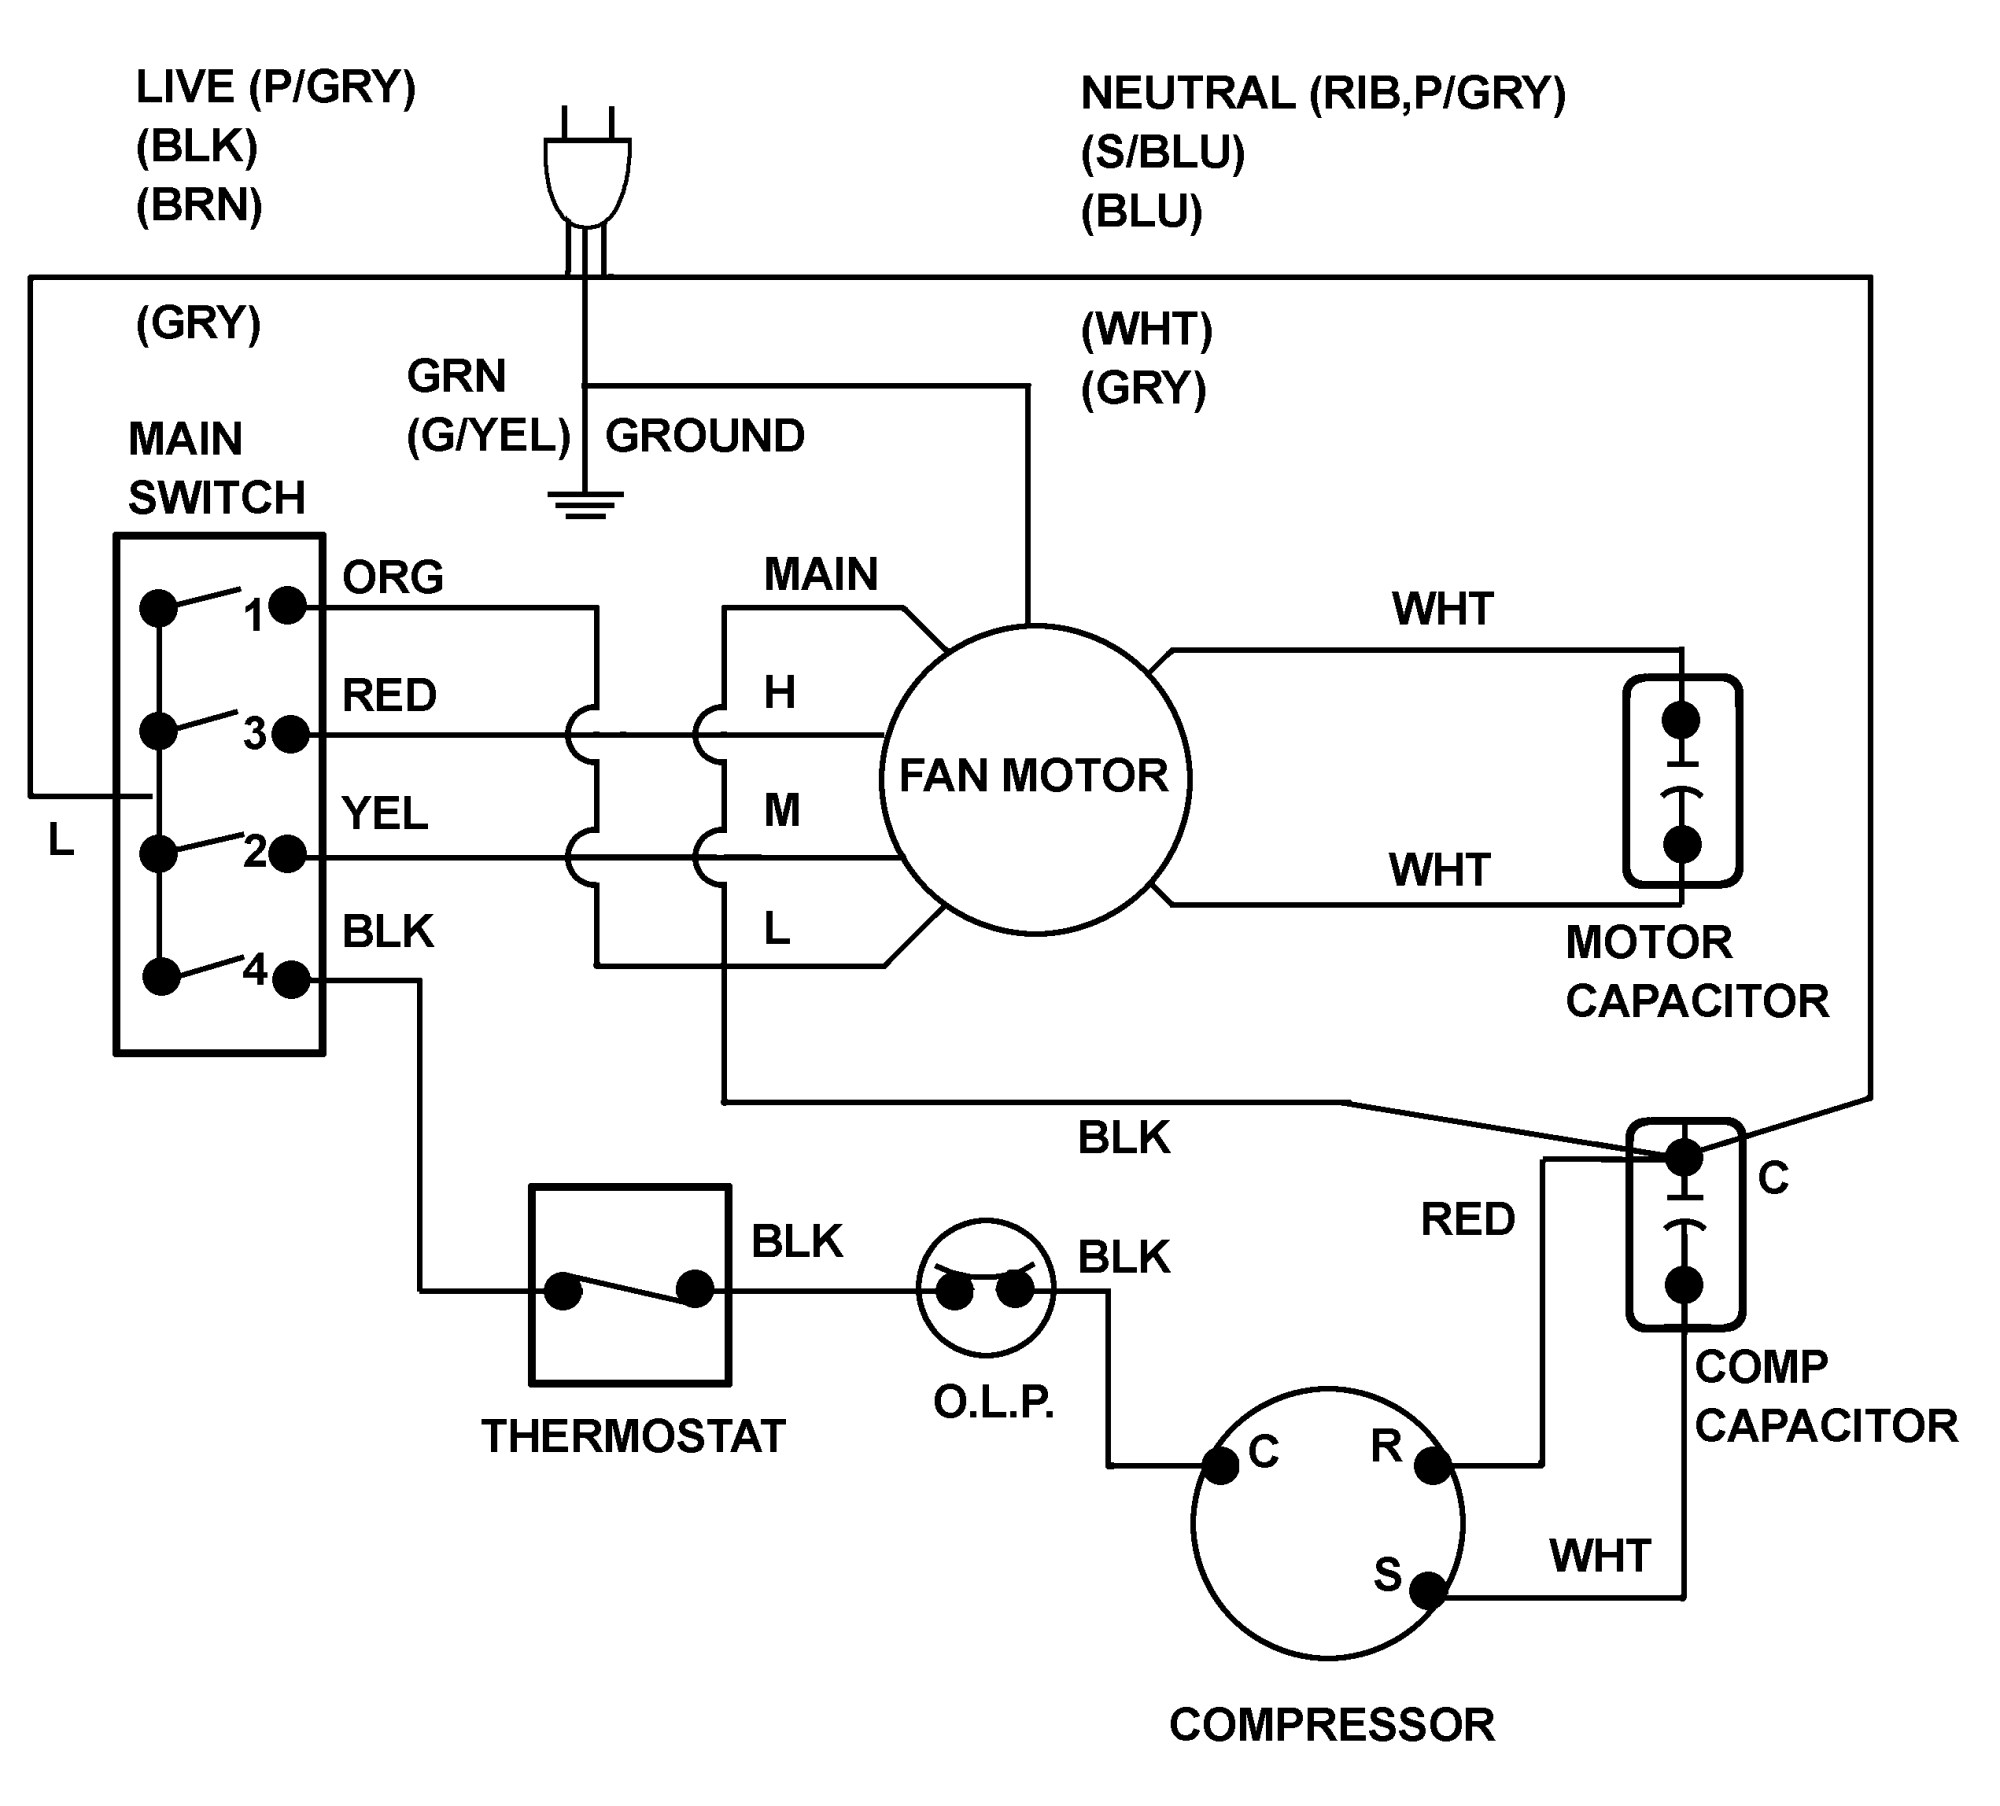 hight resolution of 240 schematic wiring diagram ac wiring diagram used 240v ac schematic wiring